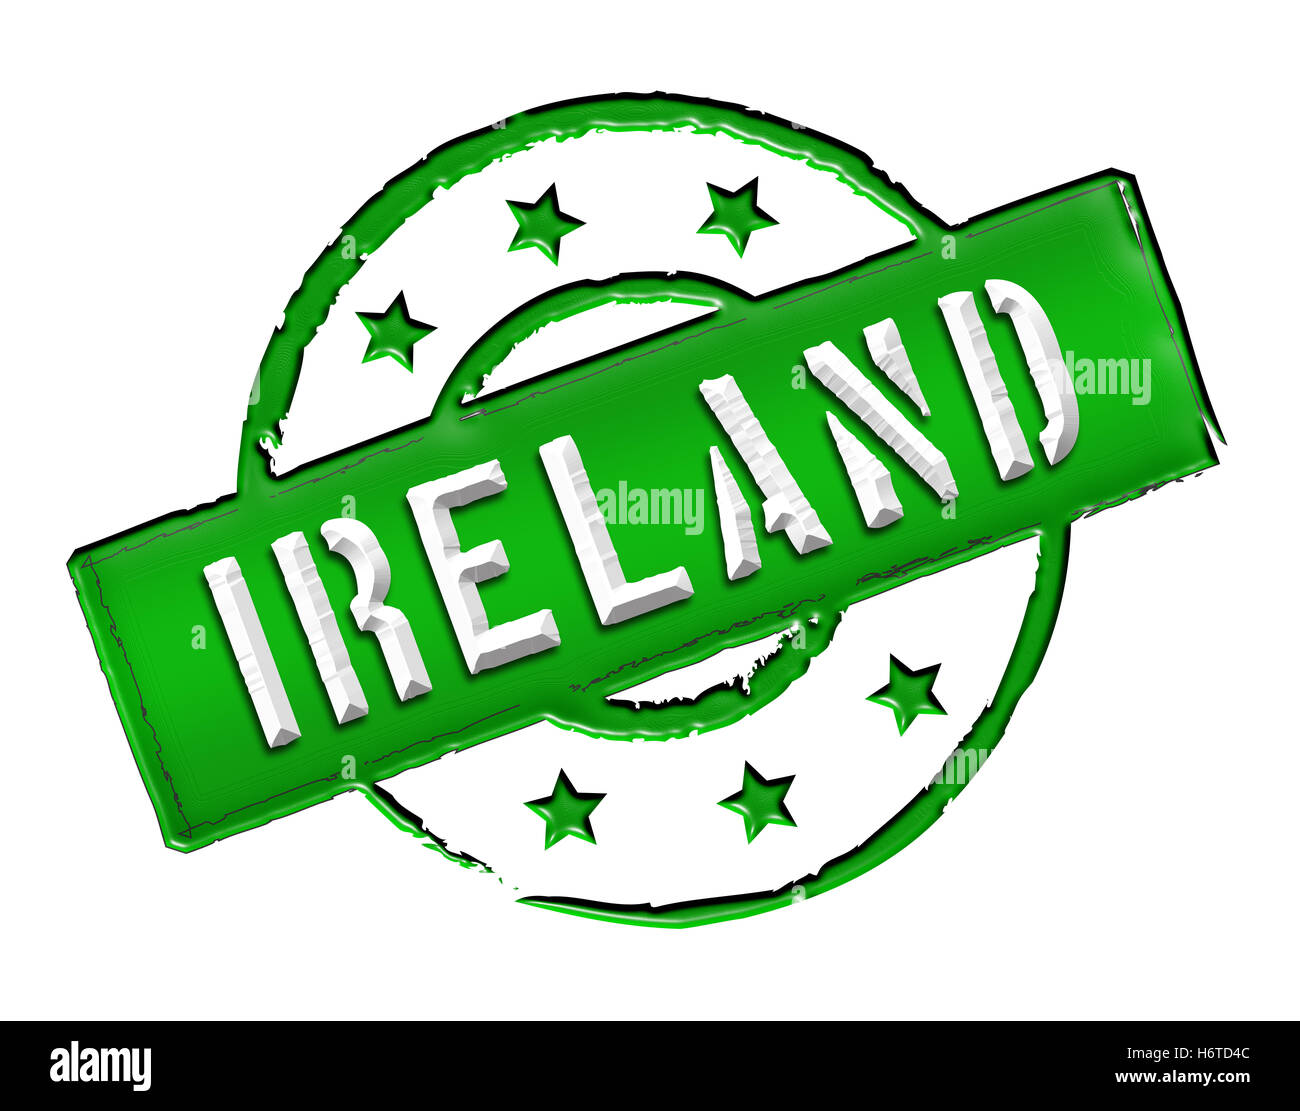 ireland isolated army england caution important attention abstract ireland queen island military retro label englisch - Stock Image